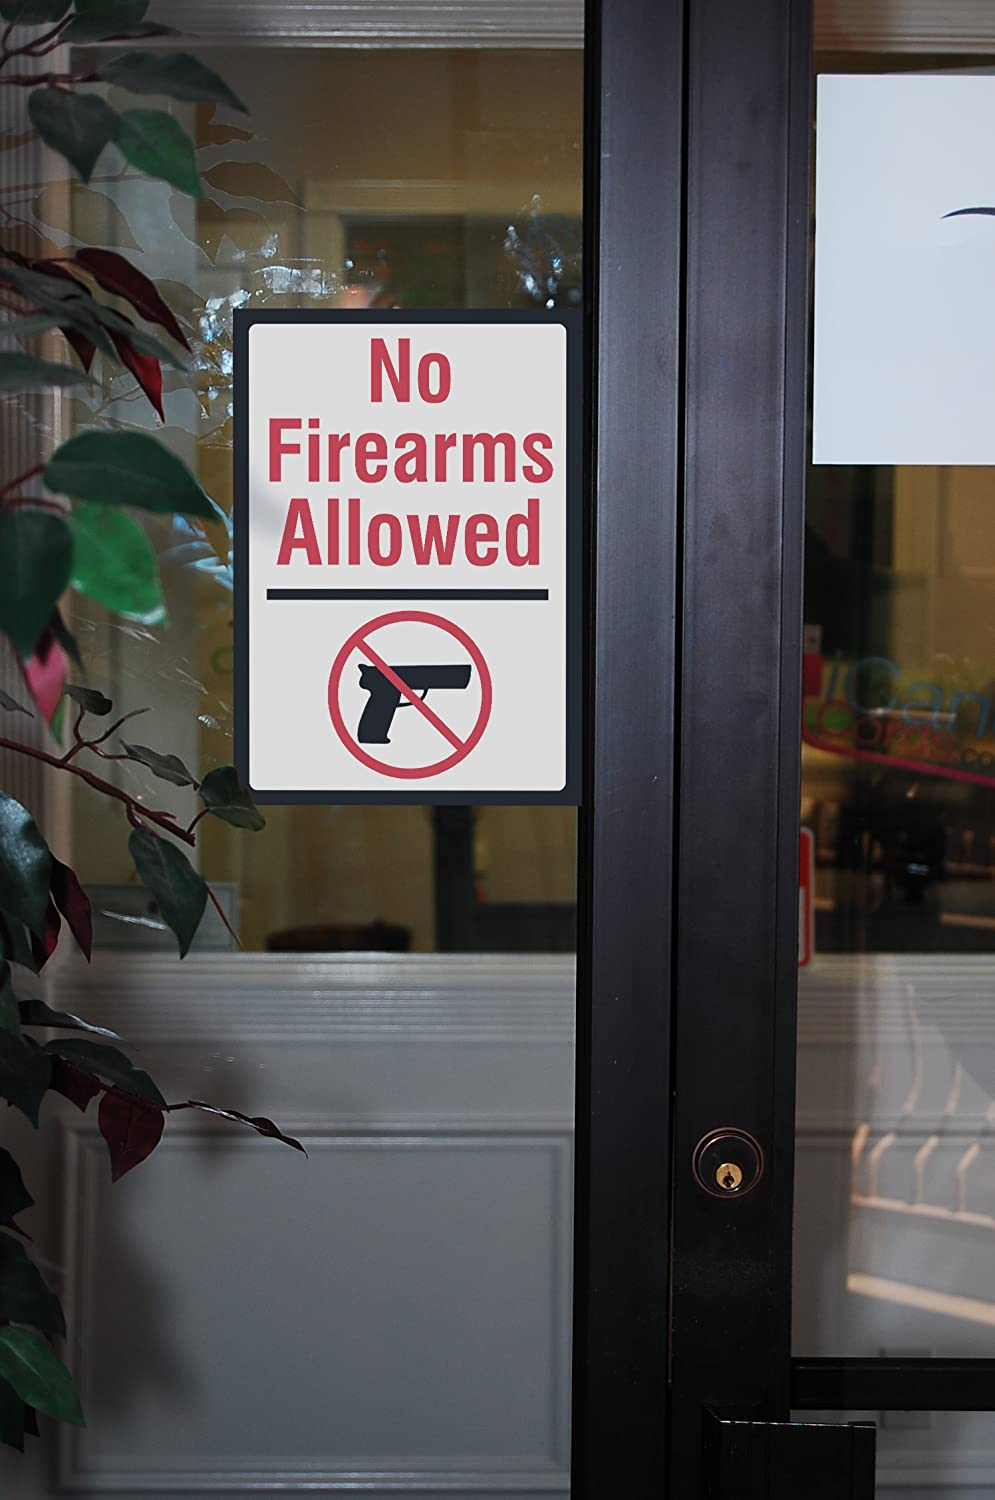 No Firearms Allowed Sign 12x18 Aluminum Metal 6 Pack Large Firearm Safety Signs No Guns